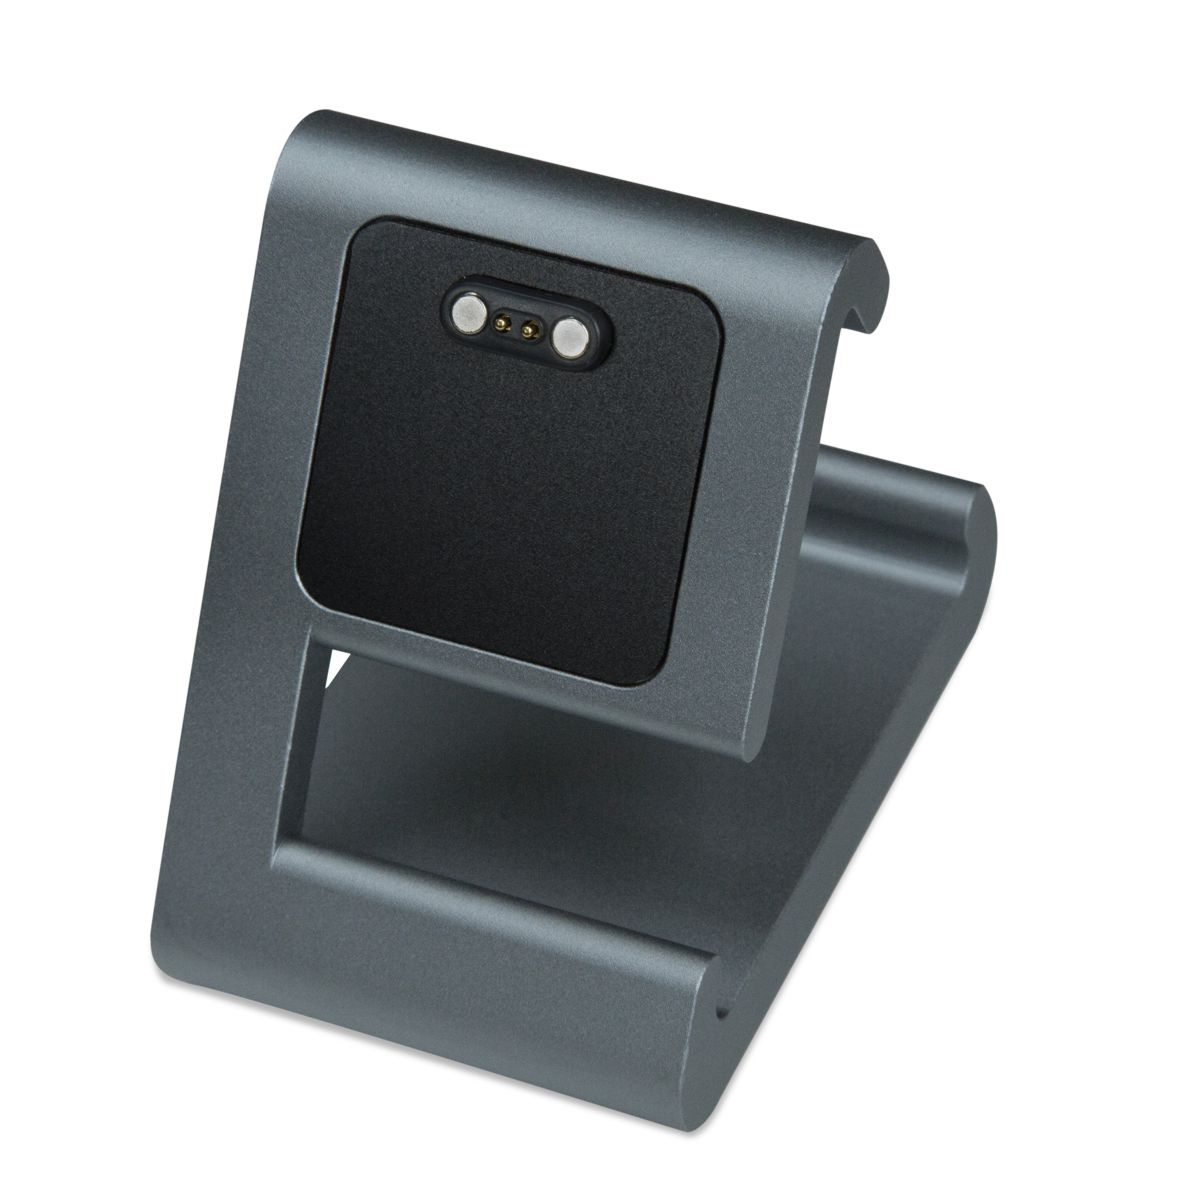 TimeDock Gunmetal charging dock for Pebble Time